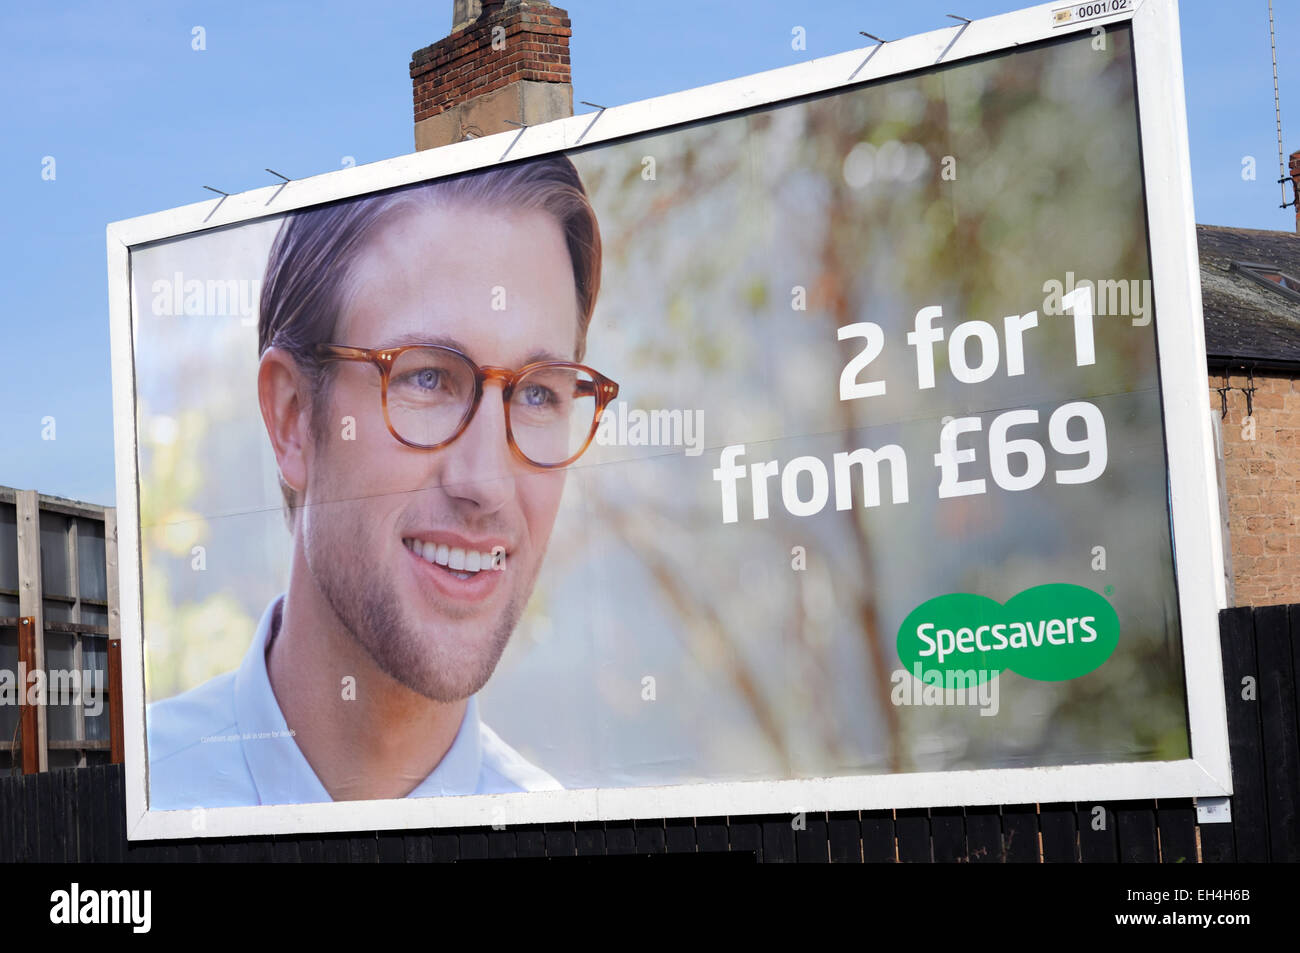 specsaver advert seeing double and more more than just a logo  specsavers and advert stock photos specsavers and advert stock specsavers billboard advertisement mansfield nottinghamshire uk stock